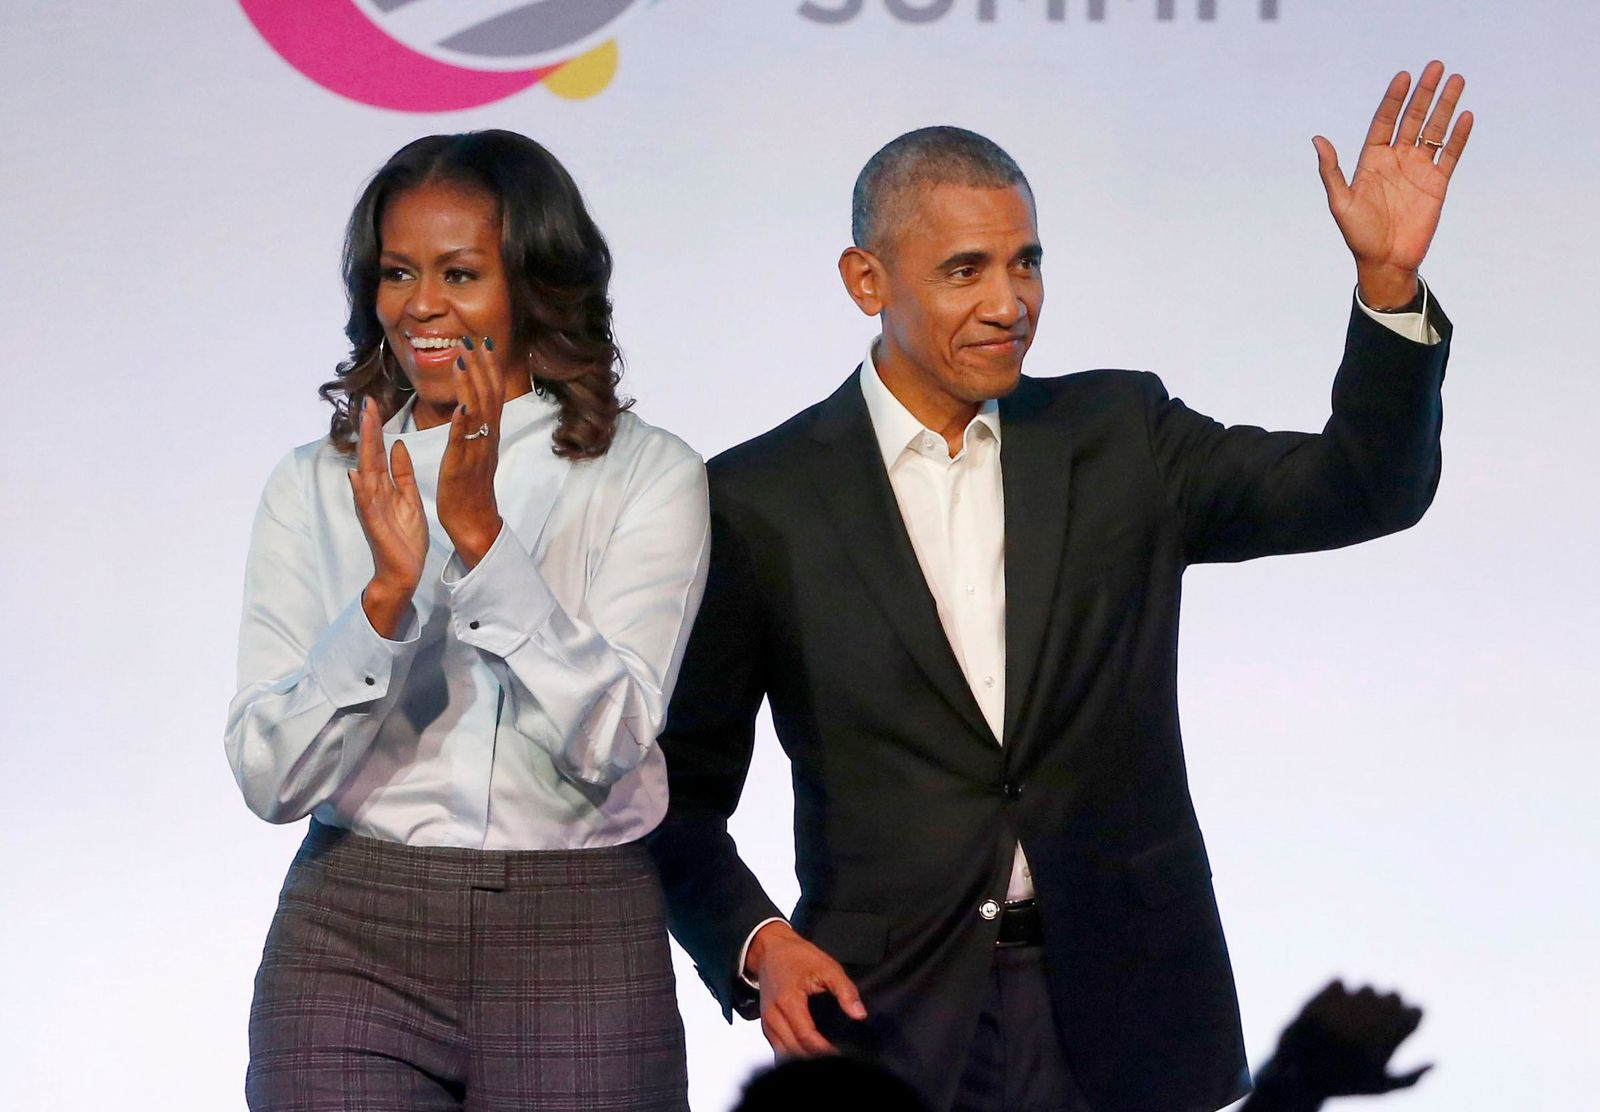 FILE - In this Oct. 31, 2017 file photo, former President Barack Obama, right, and former first lady Michelle Obama appear at the Obama Foundation Summit in Chicago. (AP Photo/Charles Rex Arbogast, File)